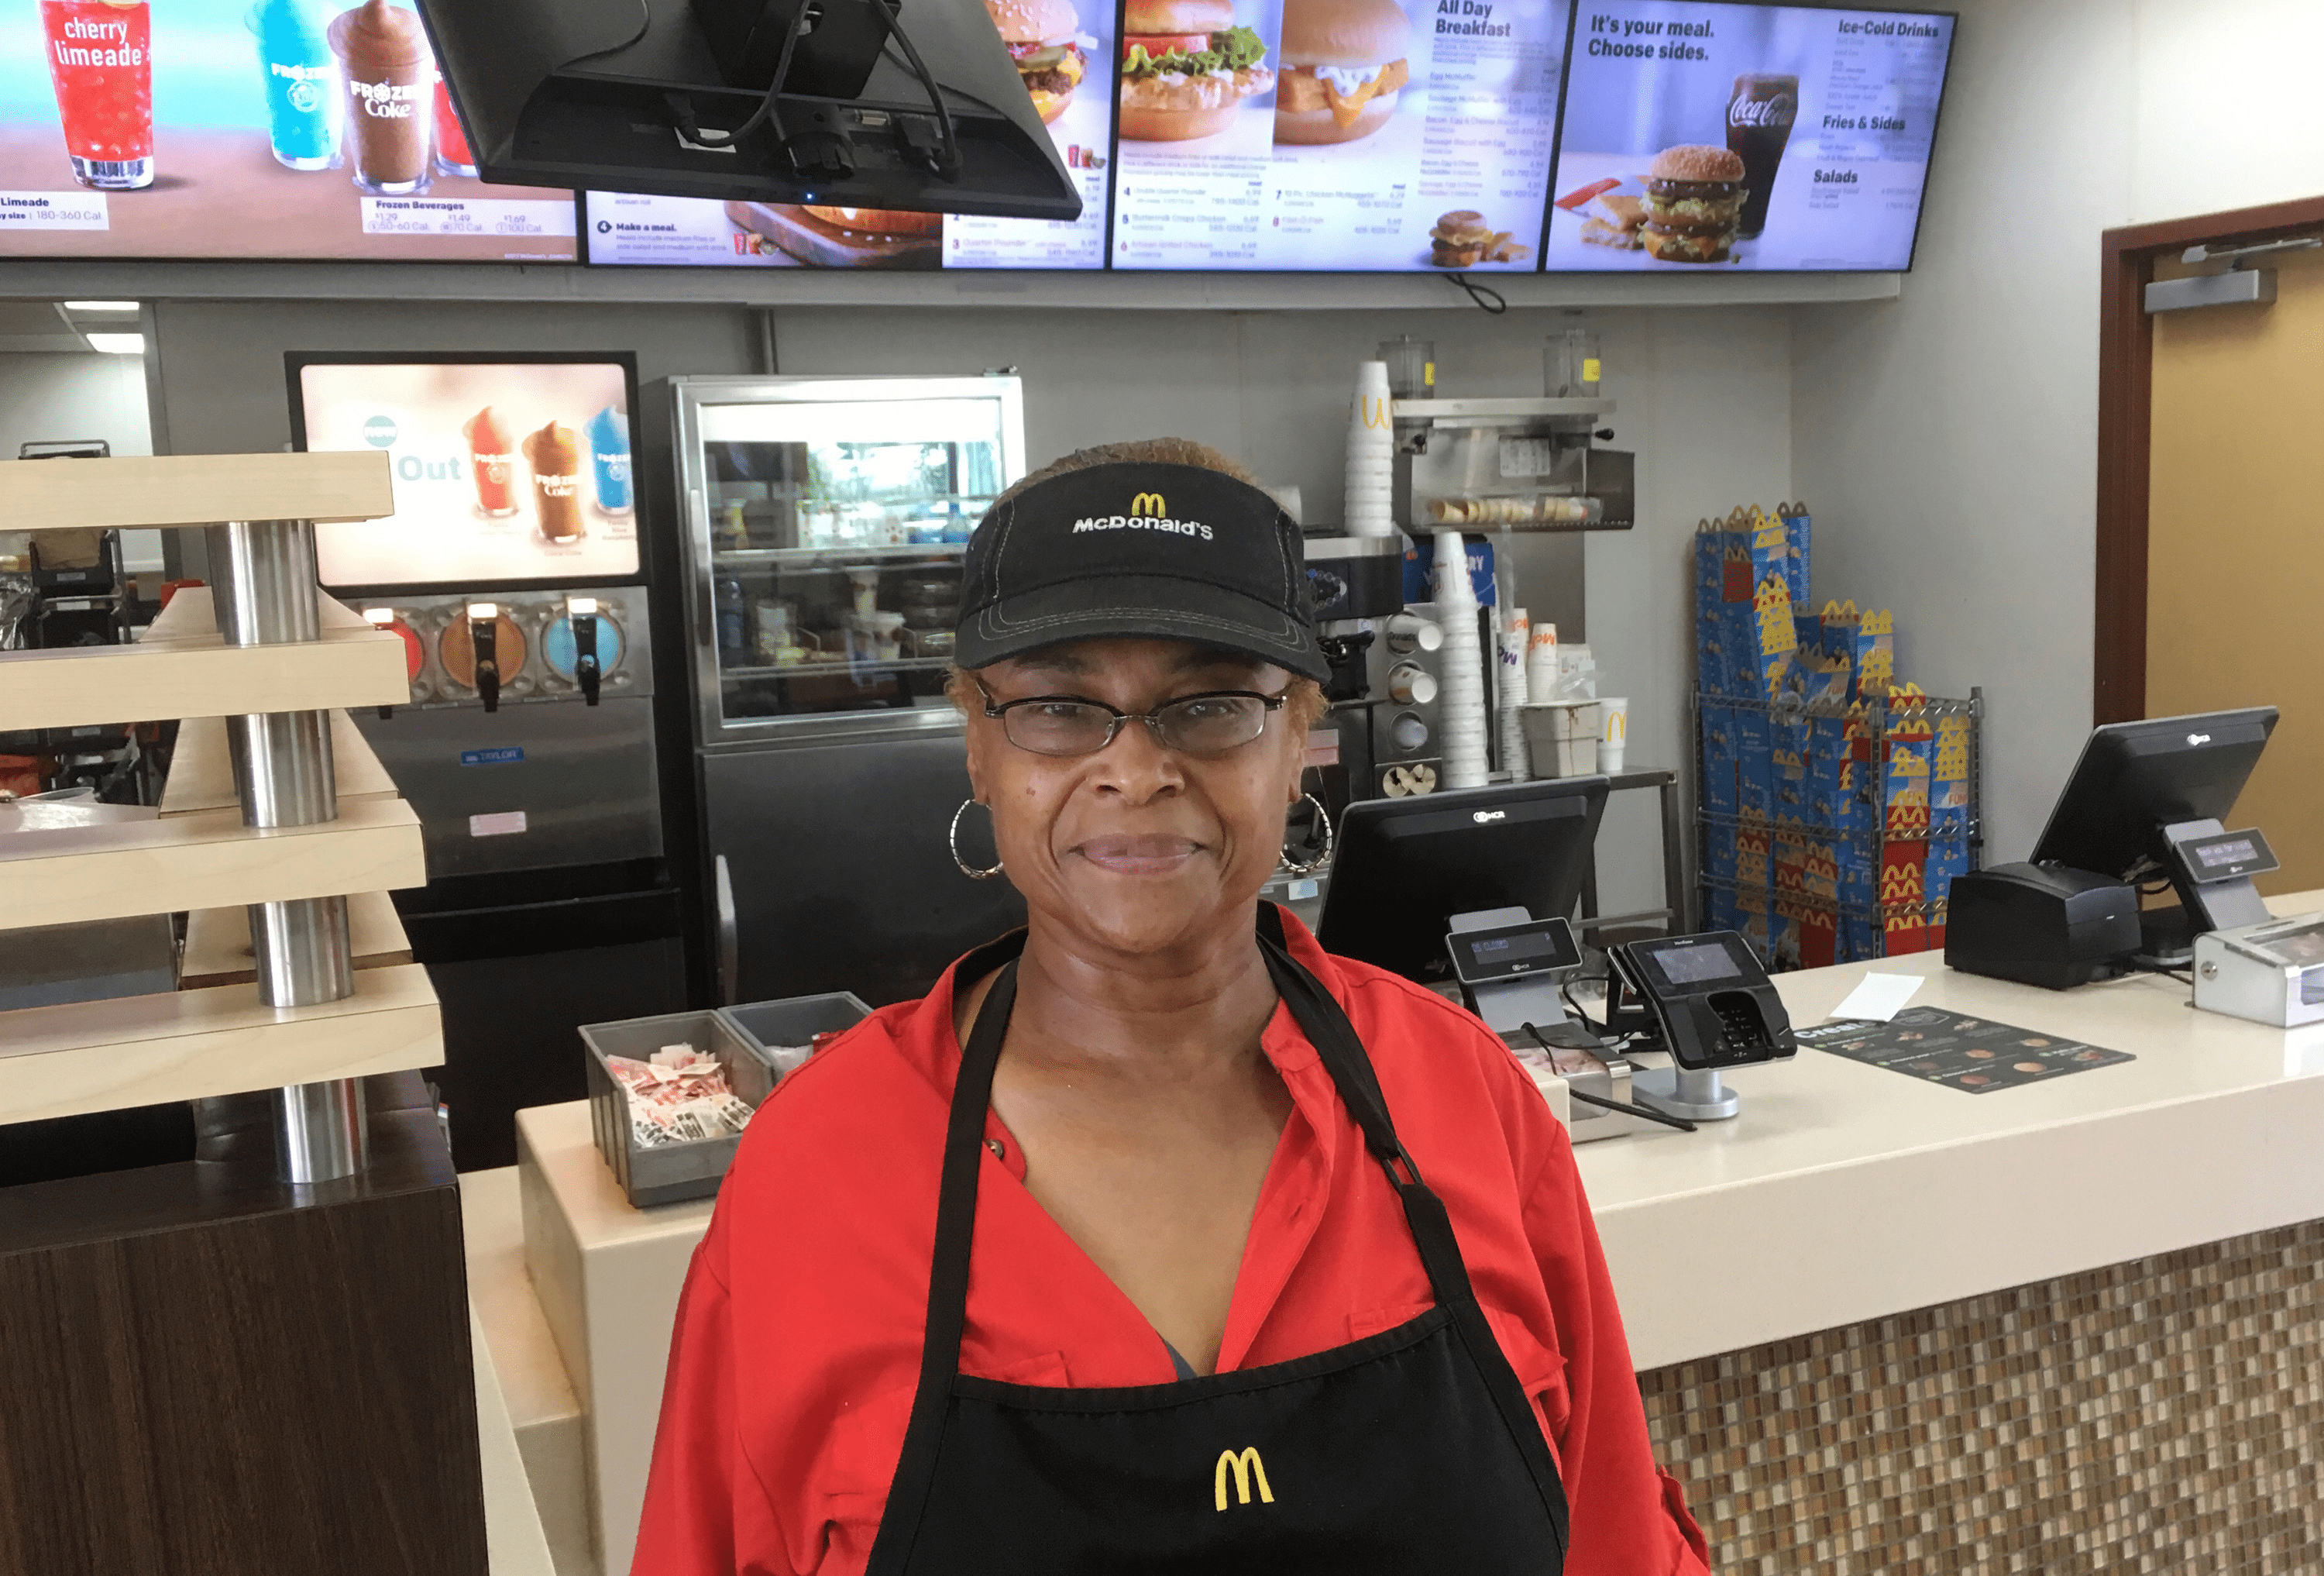 Bettie Douglas, a 59-year-old mother of three, stands inside the McDonald's she works in St. Louis.